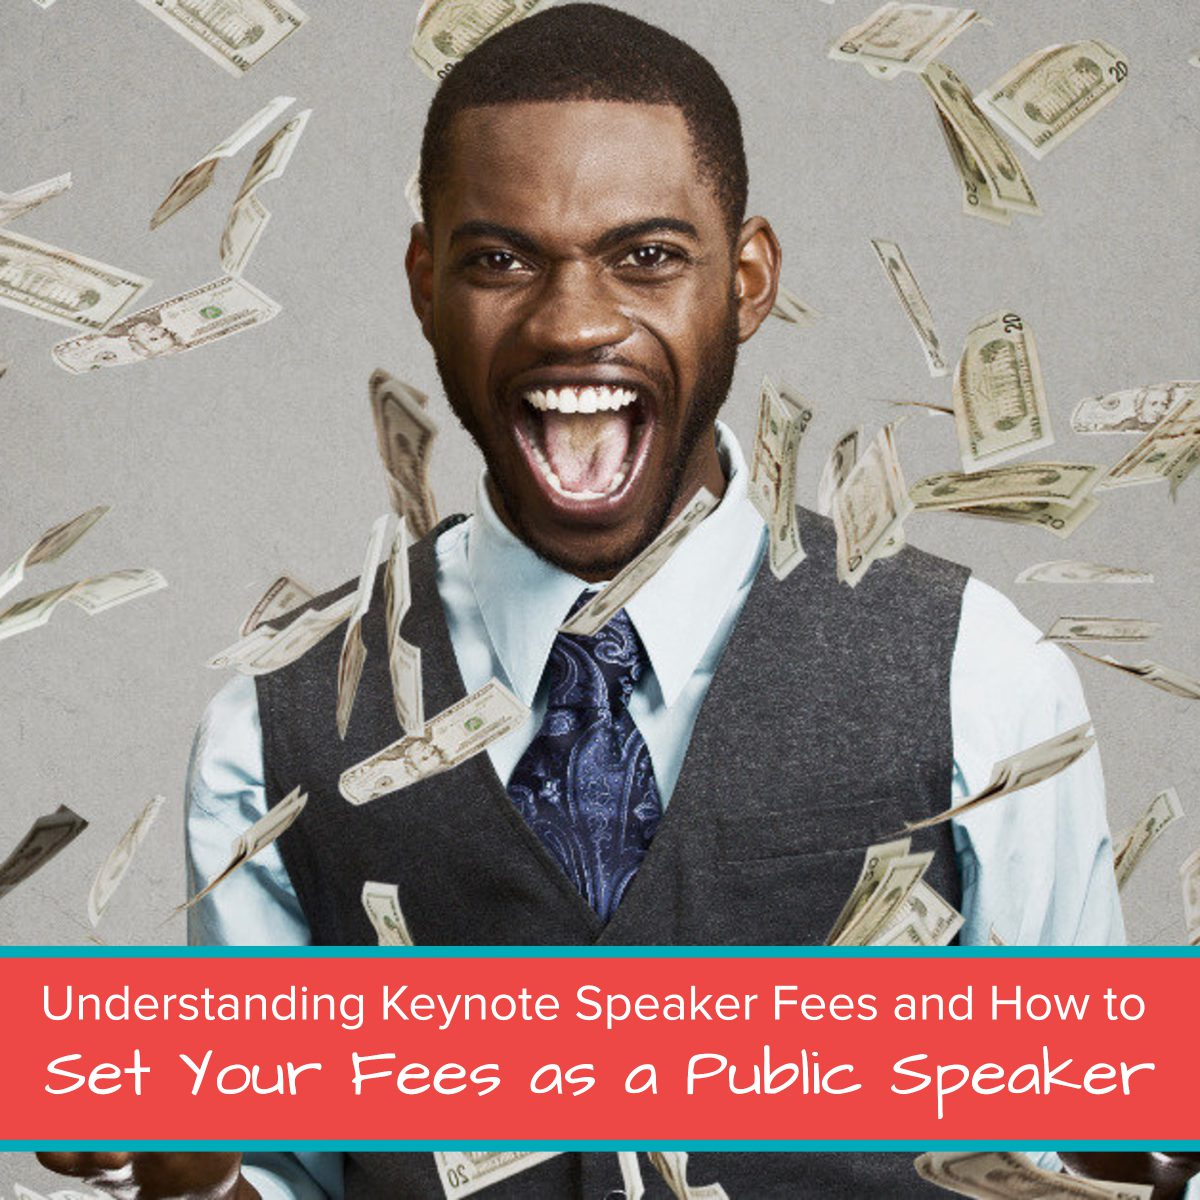 Understanding Keynote Speaker Fees and How to Set Your Fees as a Public Speaker final featured image